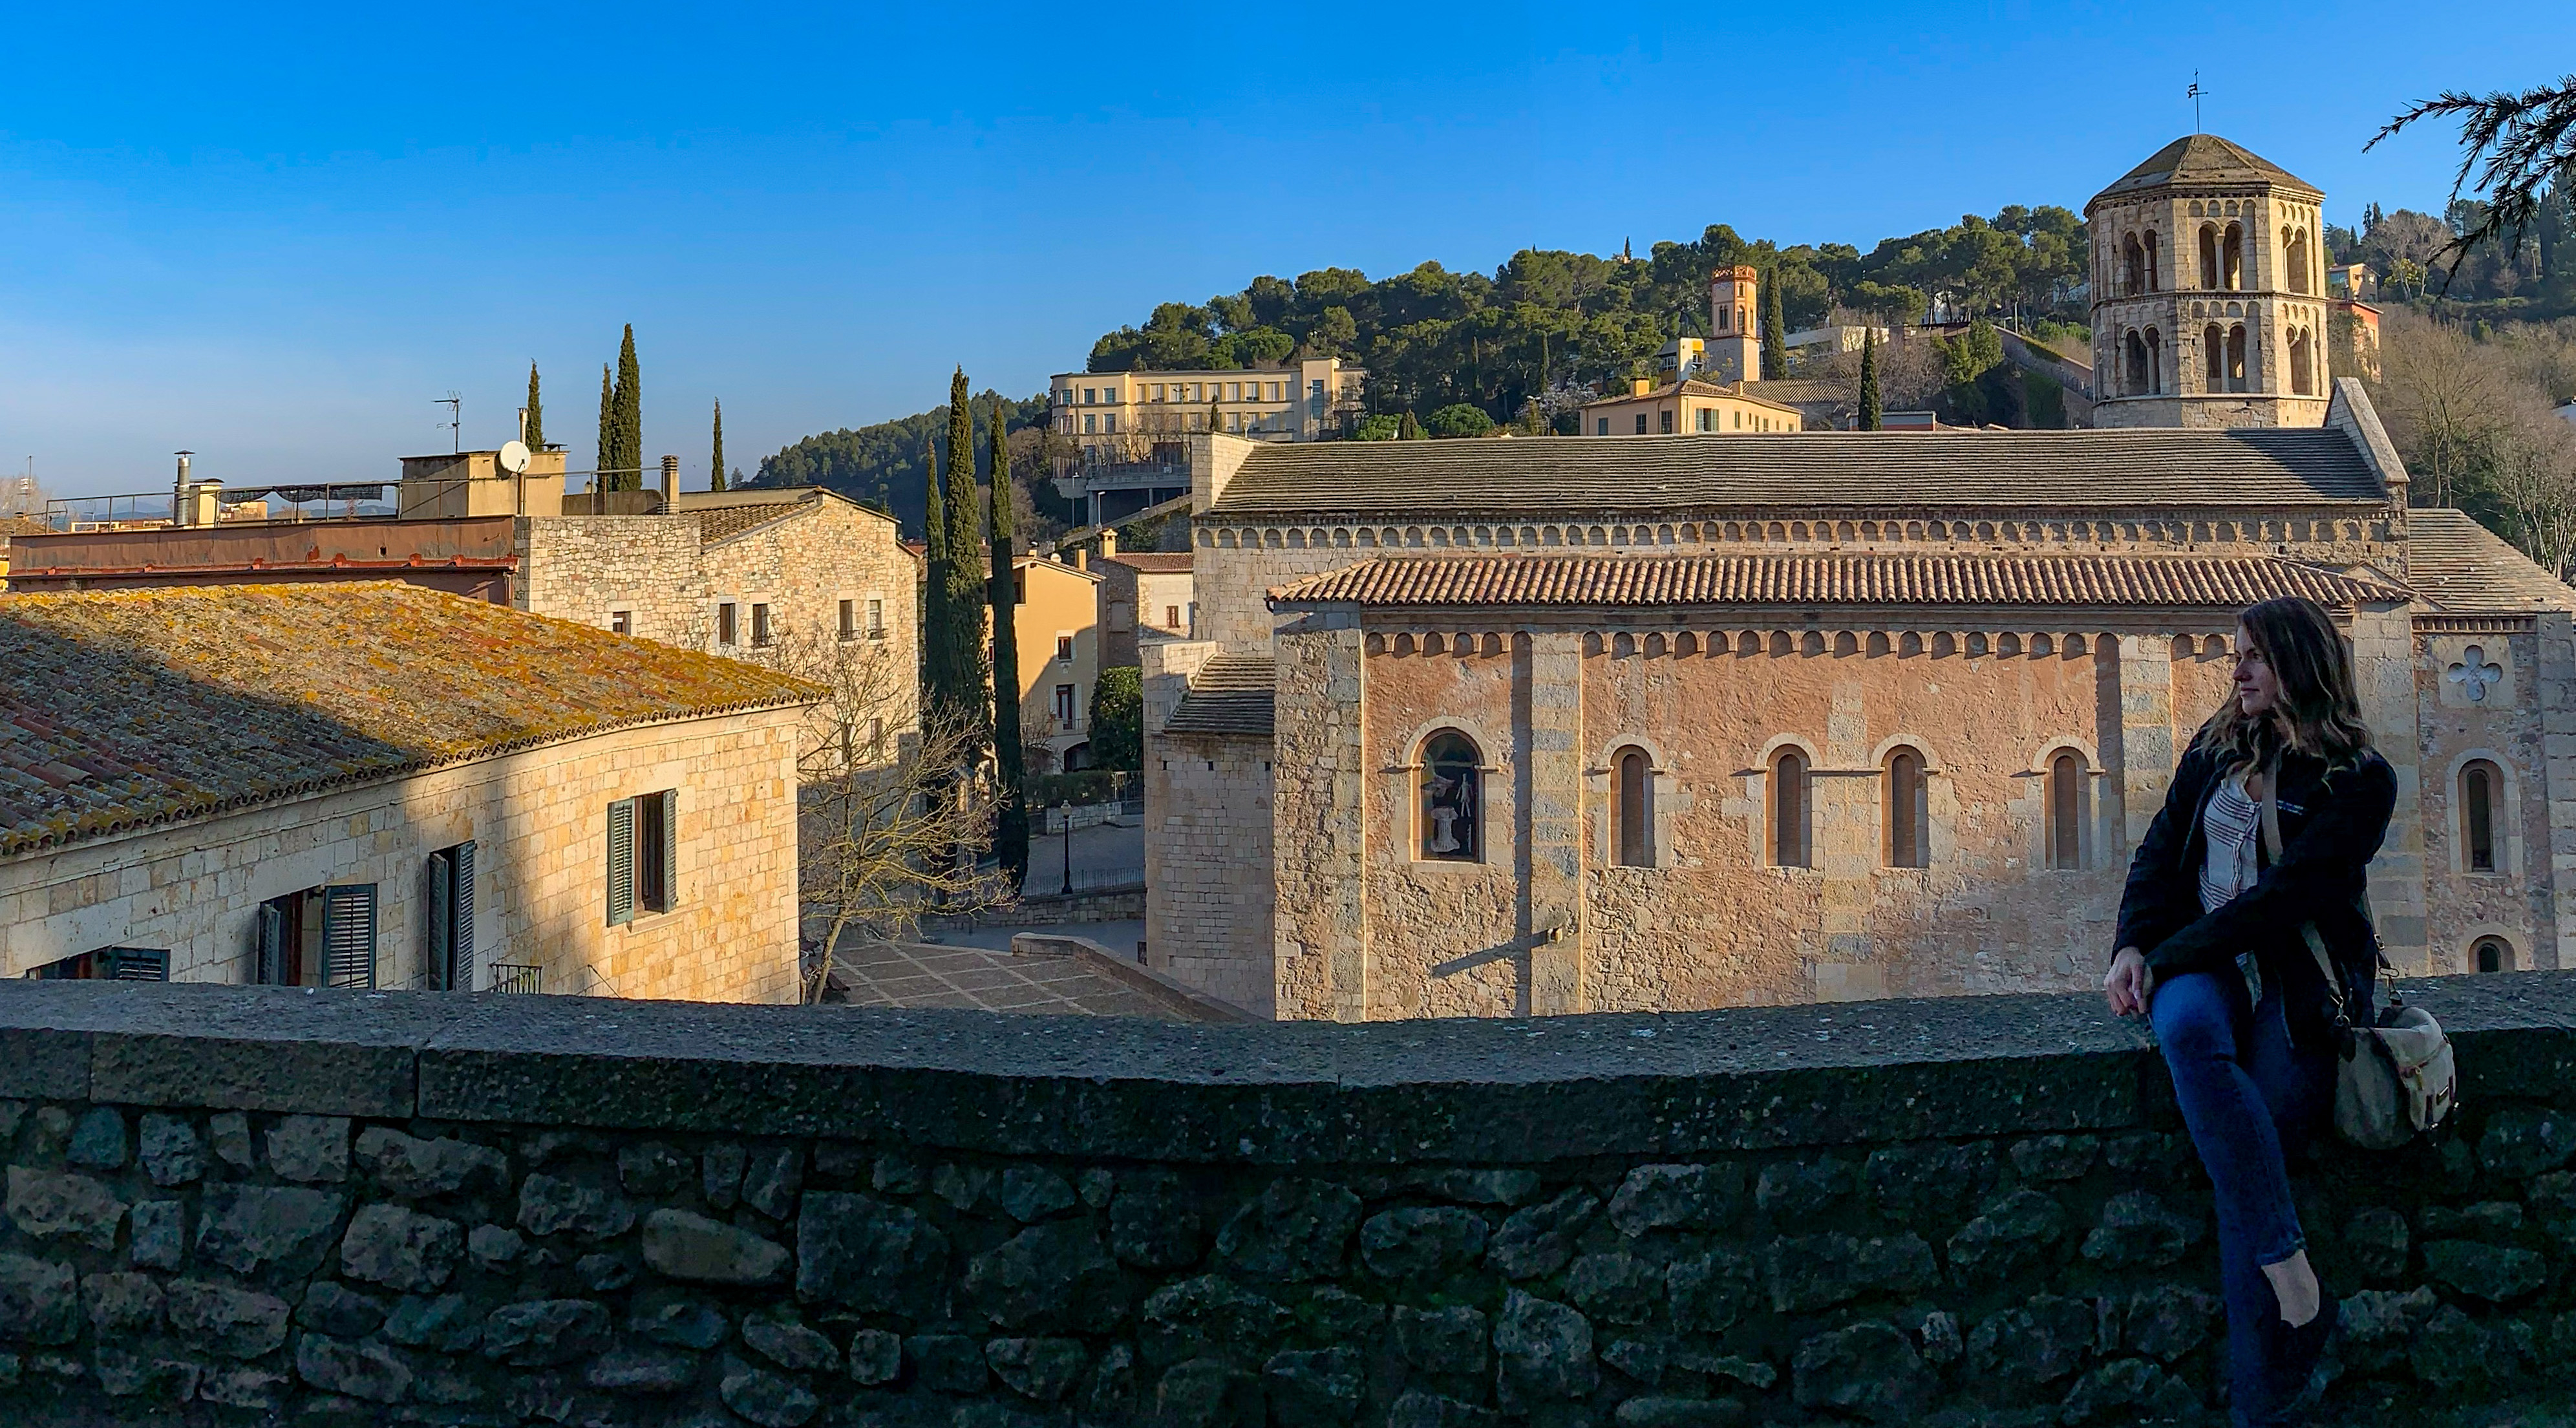 Writer sits on the right hand side of a short stone wall facing left with legs crossed. Behinds her are the roofs of a couple of Mediterranean buildings and a small tower to the right. Tall green trees stand behind the buildings.